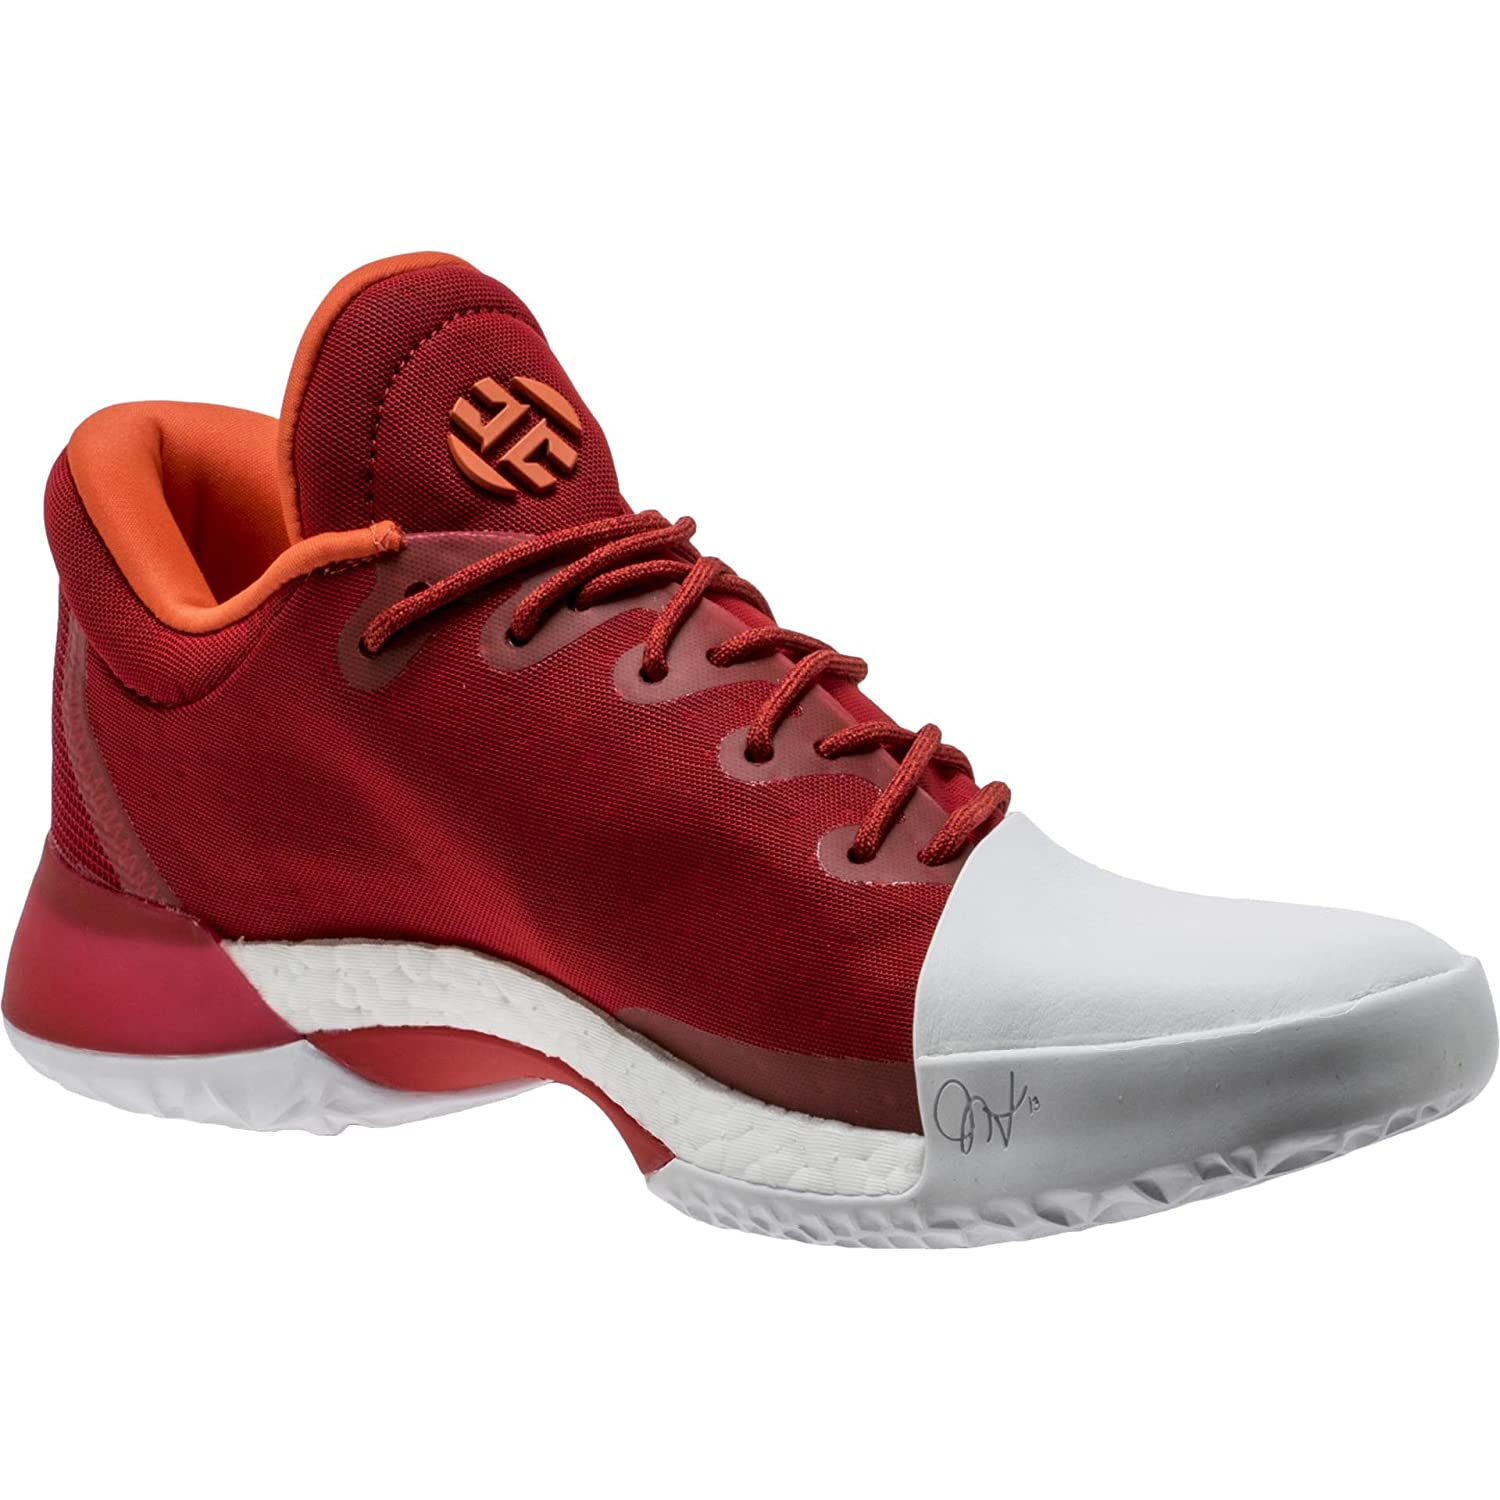 b988ecf06a3 adidas Harden Vol. 1 Shoe - Men s Basketball